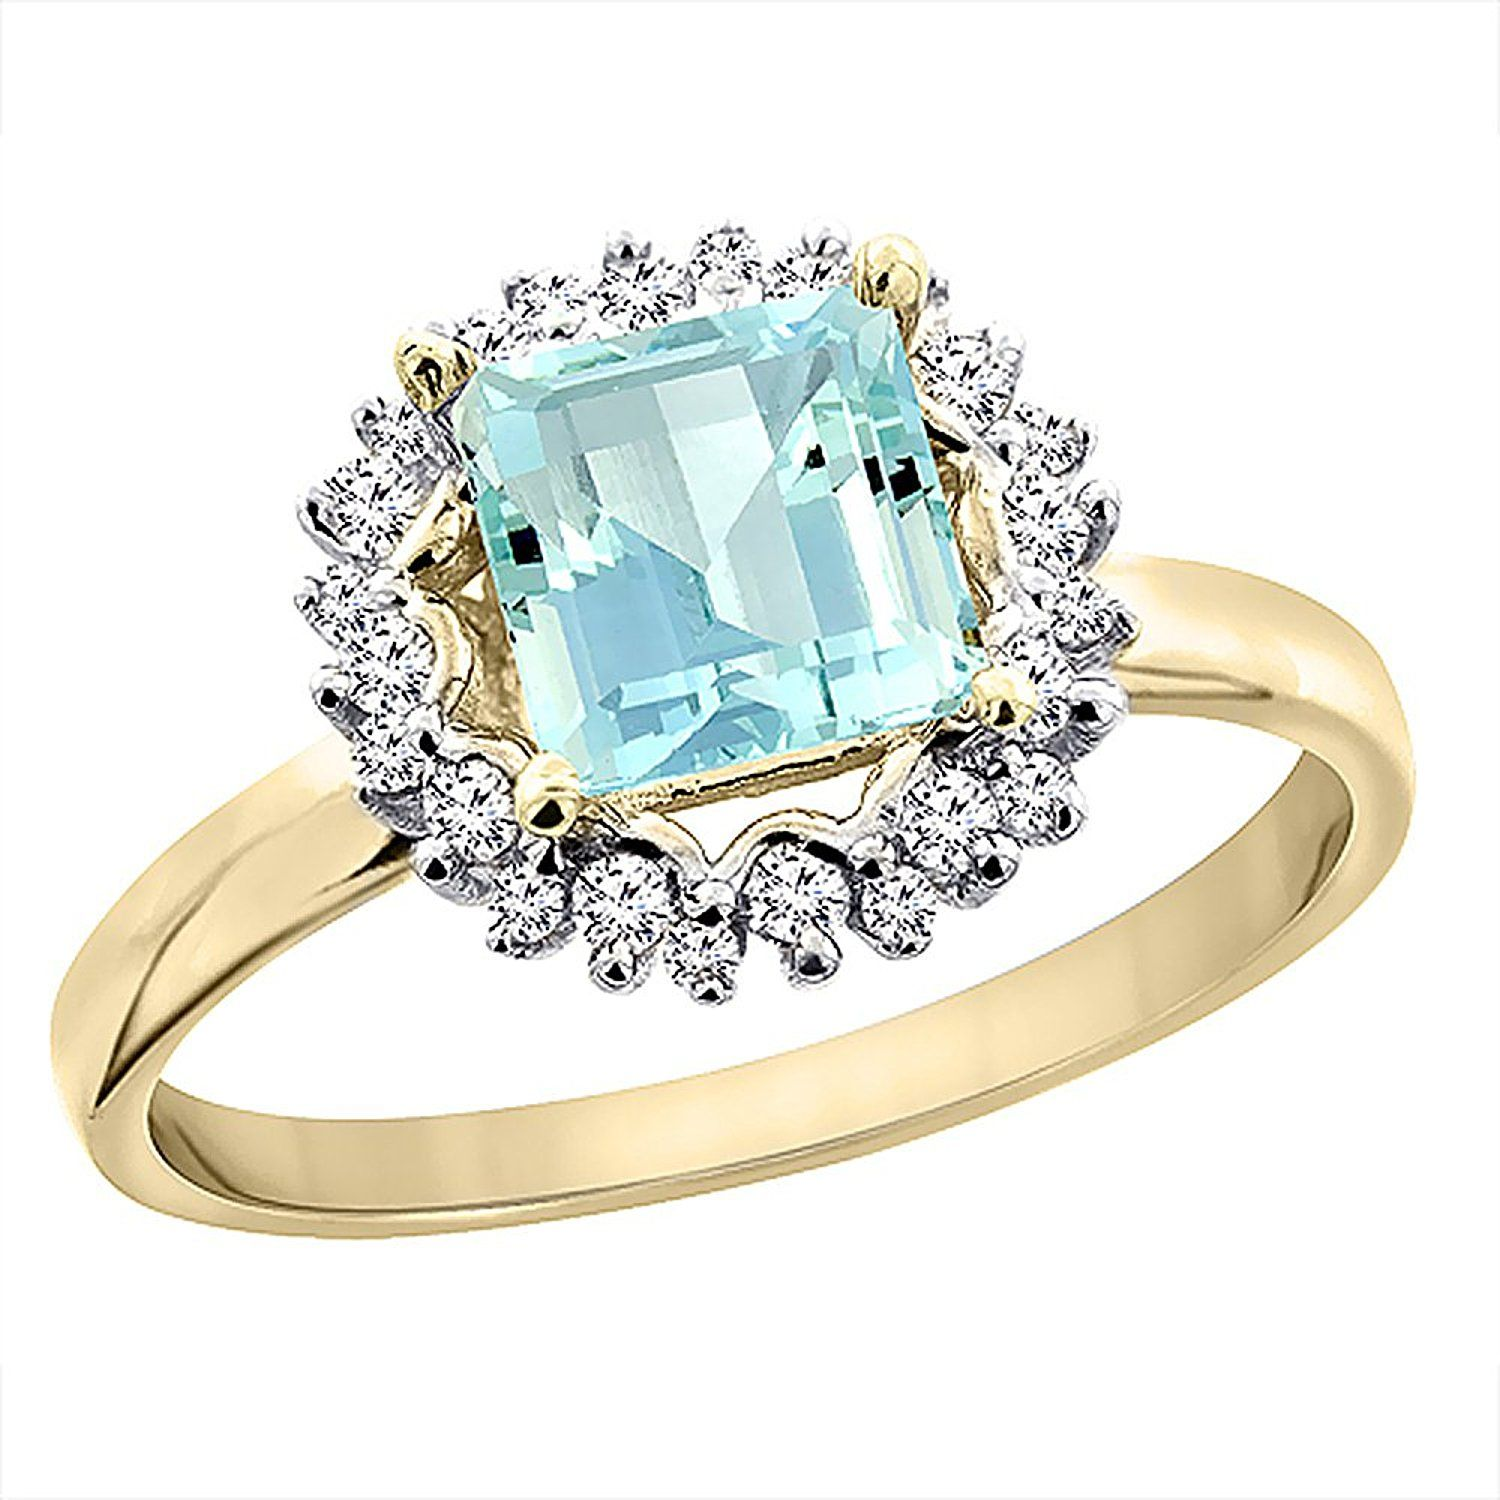 10K Yellow Gold Natural Aquamarine Ring Square 6x6 mm Diamond Accents, sizes 5 - 10 -- You can get more details here : Promise Rings Jewelry